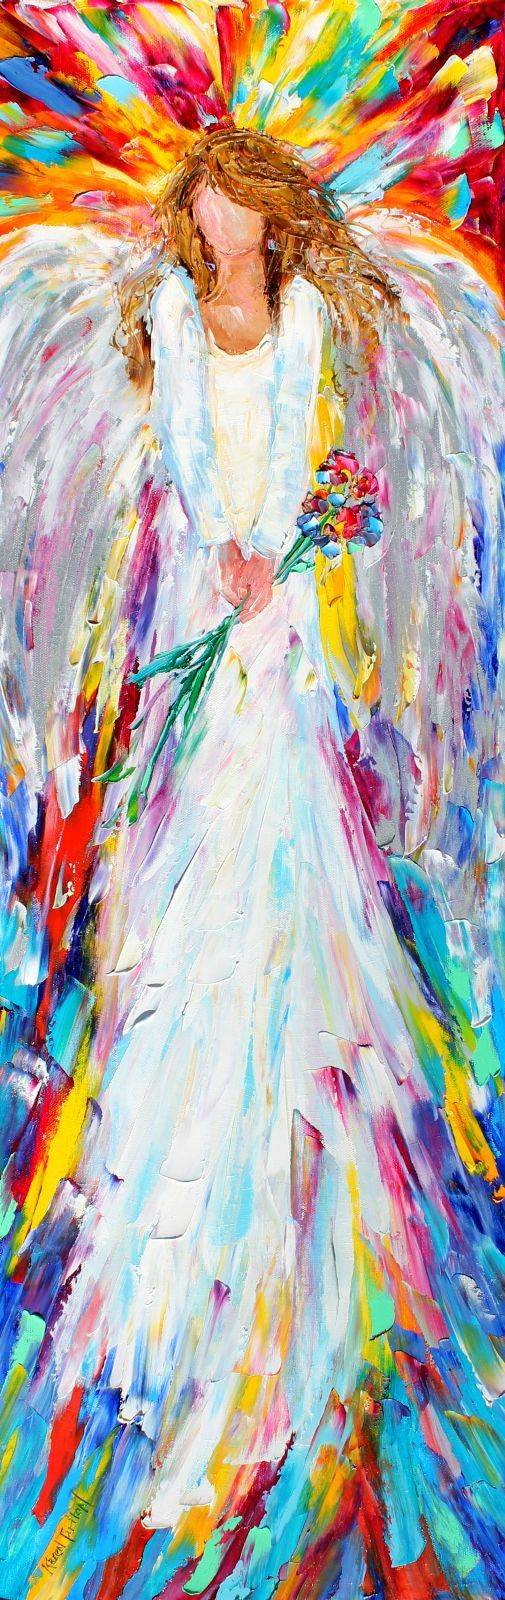 Original oil painting Angel palette knife impasto by Karensfineart I like color explosion, but I lose to angle part..